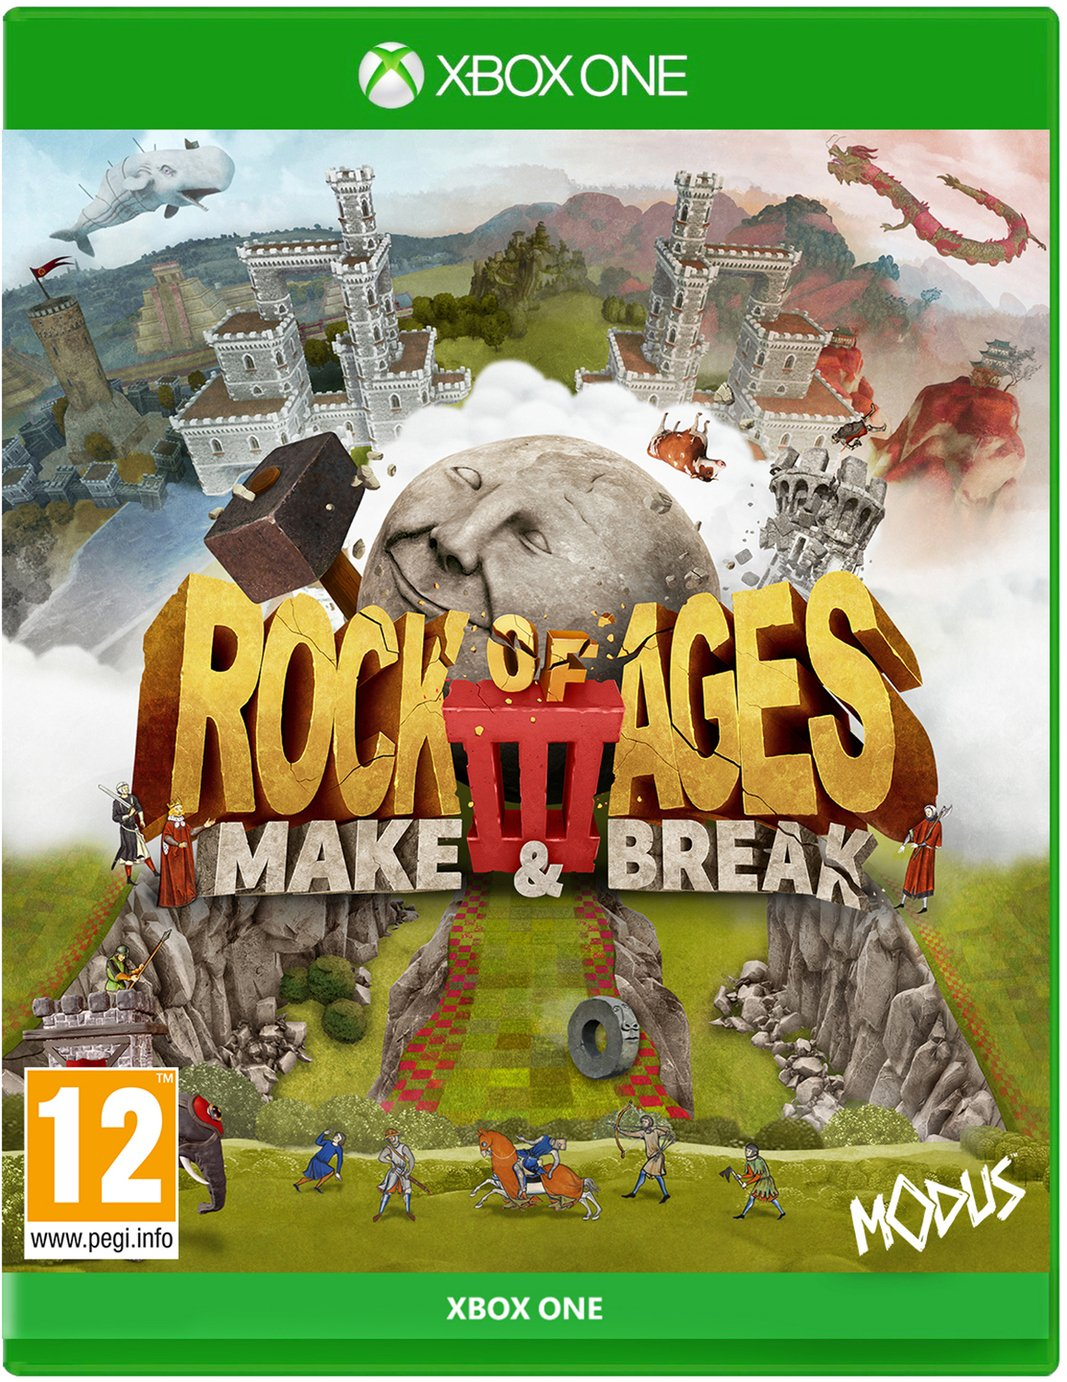 Rock of Ages 3: Make & Break Xbox One Pre-Order Game